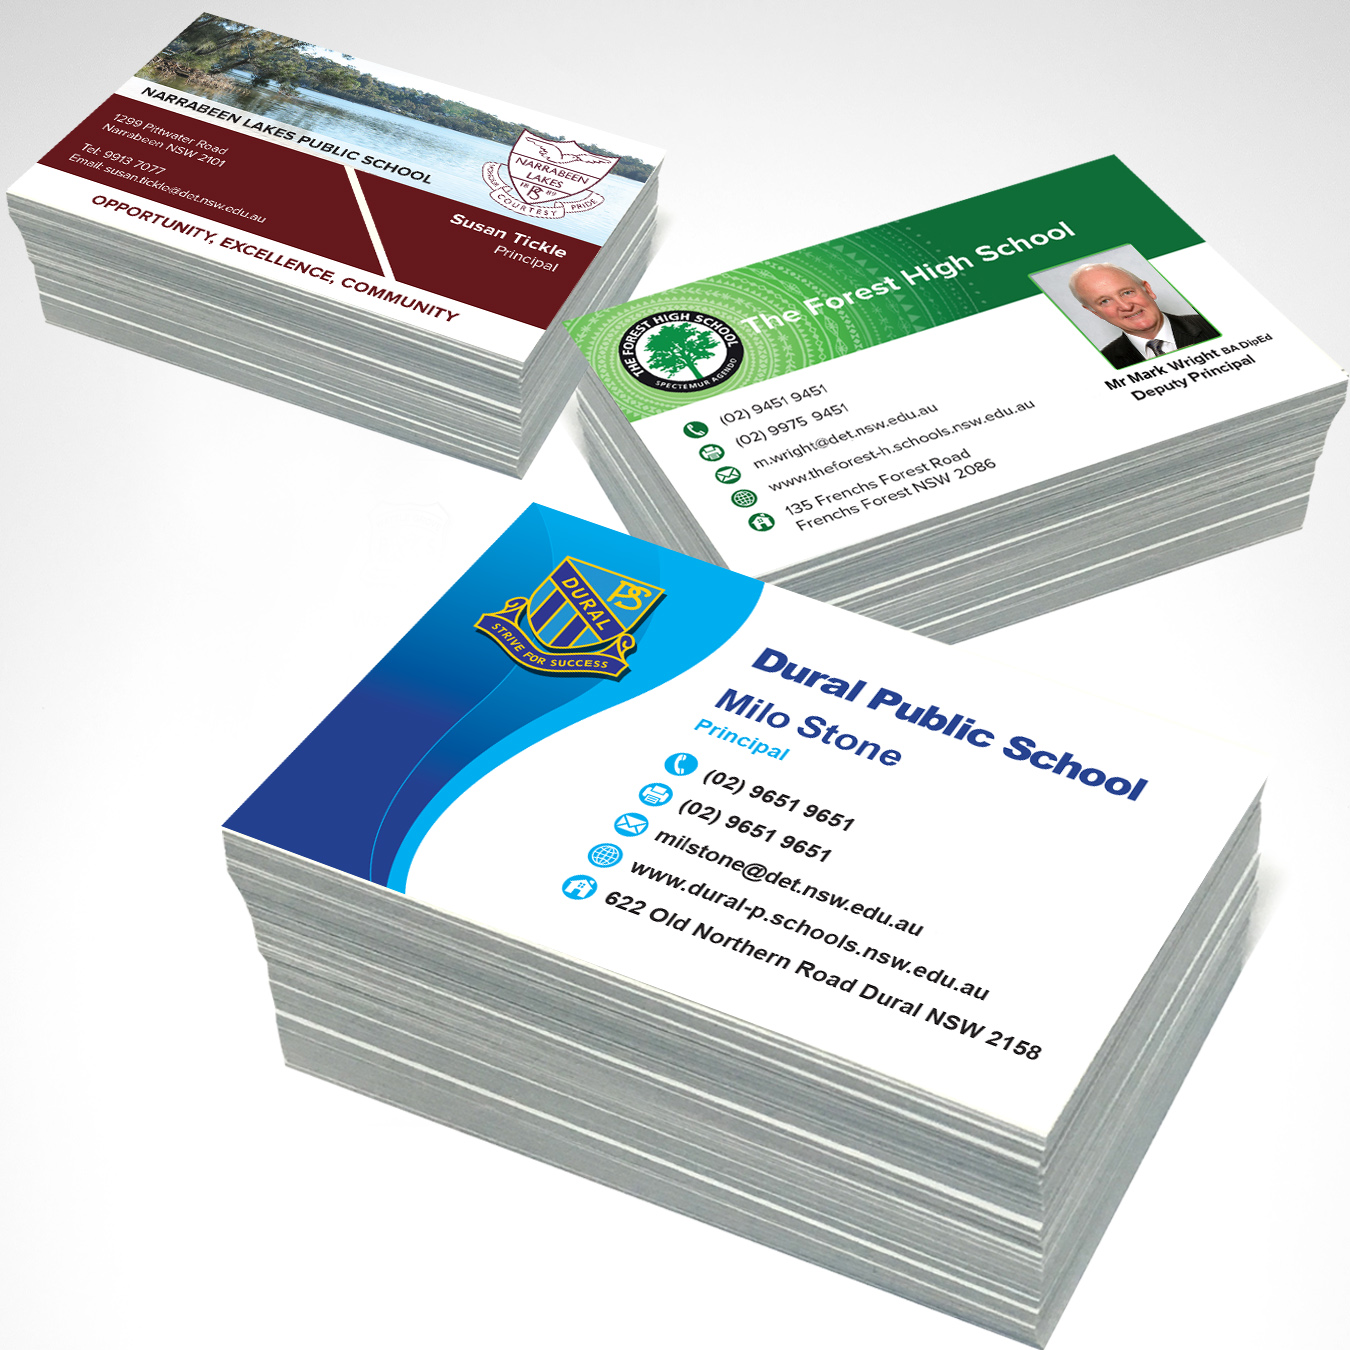 Business cards advancedprint your business card can be a very effective marketing tool and you want them to make the right impression choose from our exclusive designs or let us design reheart Choice Image